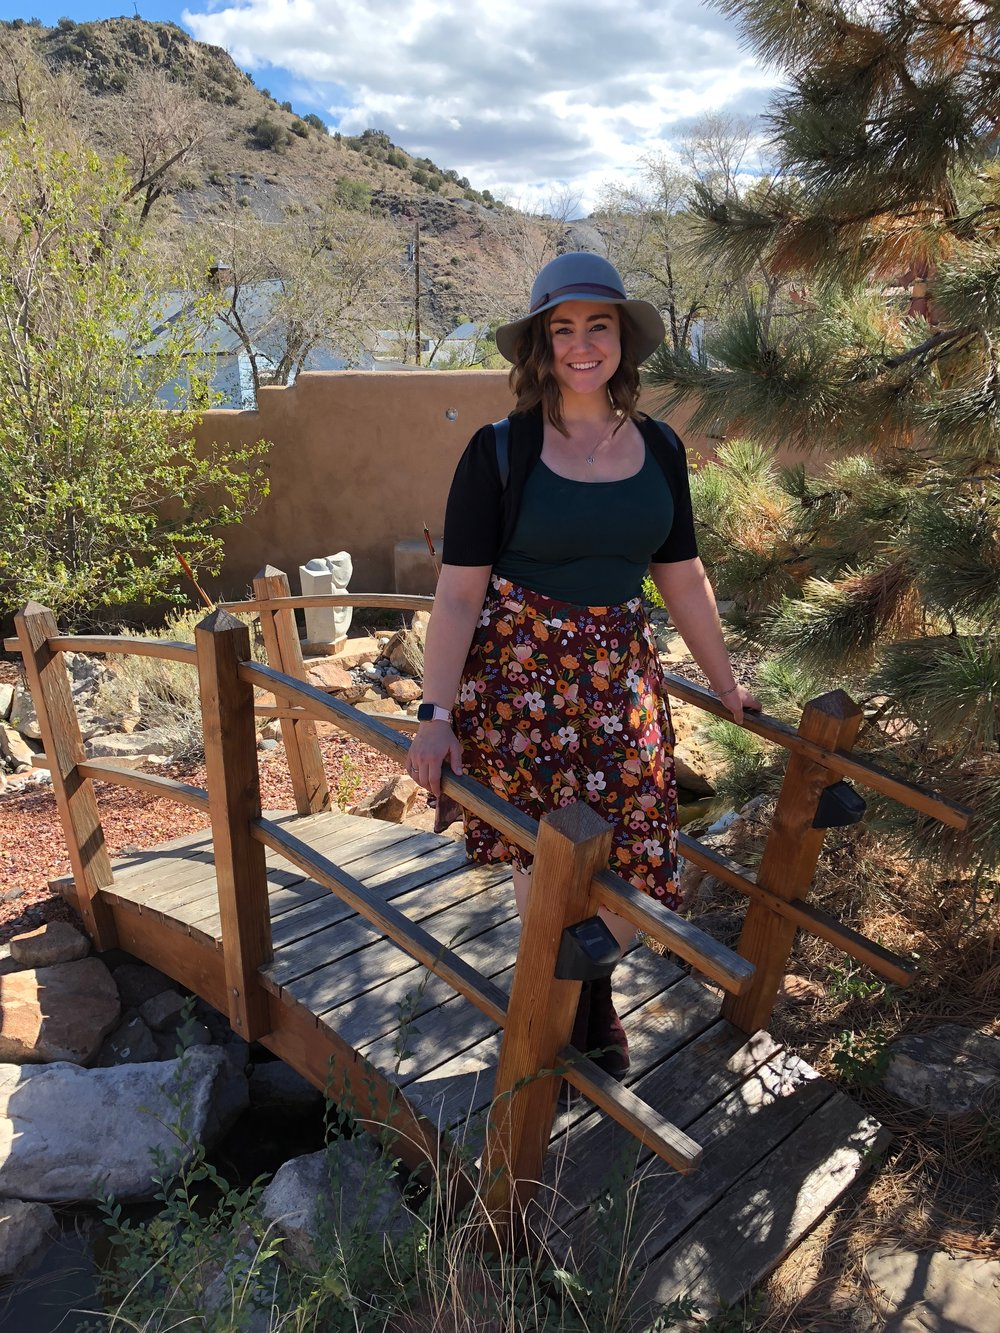 Wandering in Madrid, NM, wearing the  culottes  I made recently! I made it a point to pack several handmade items - and I got compliments on all of them!